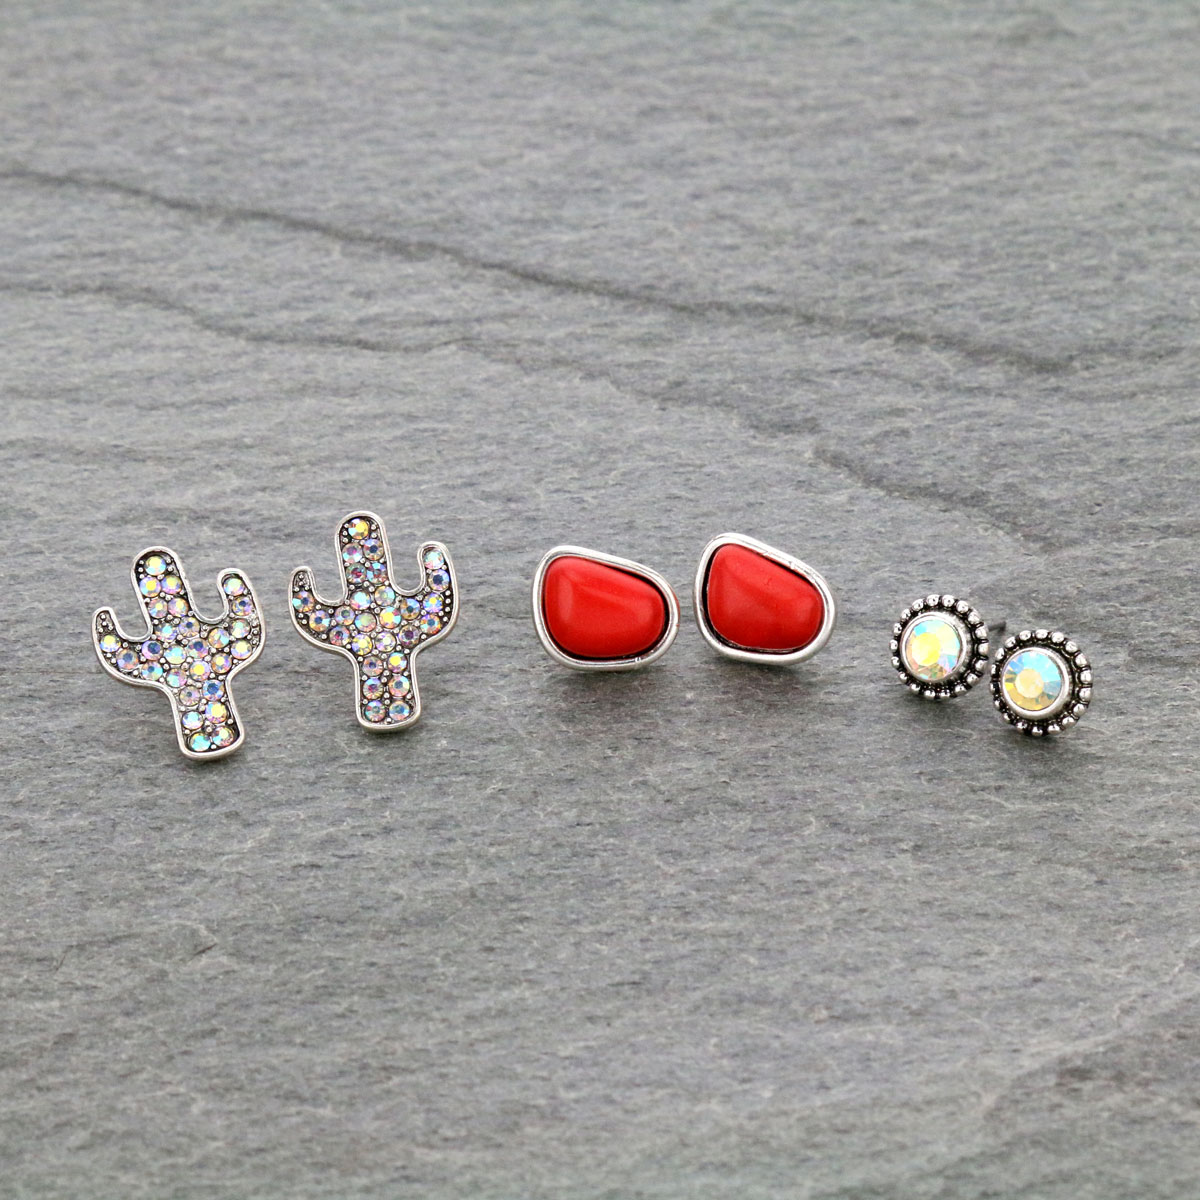 3 Pair Cactus Stone Stud Earrings Set-ER1115/COR